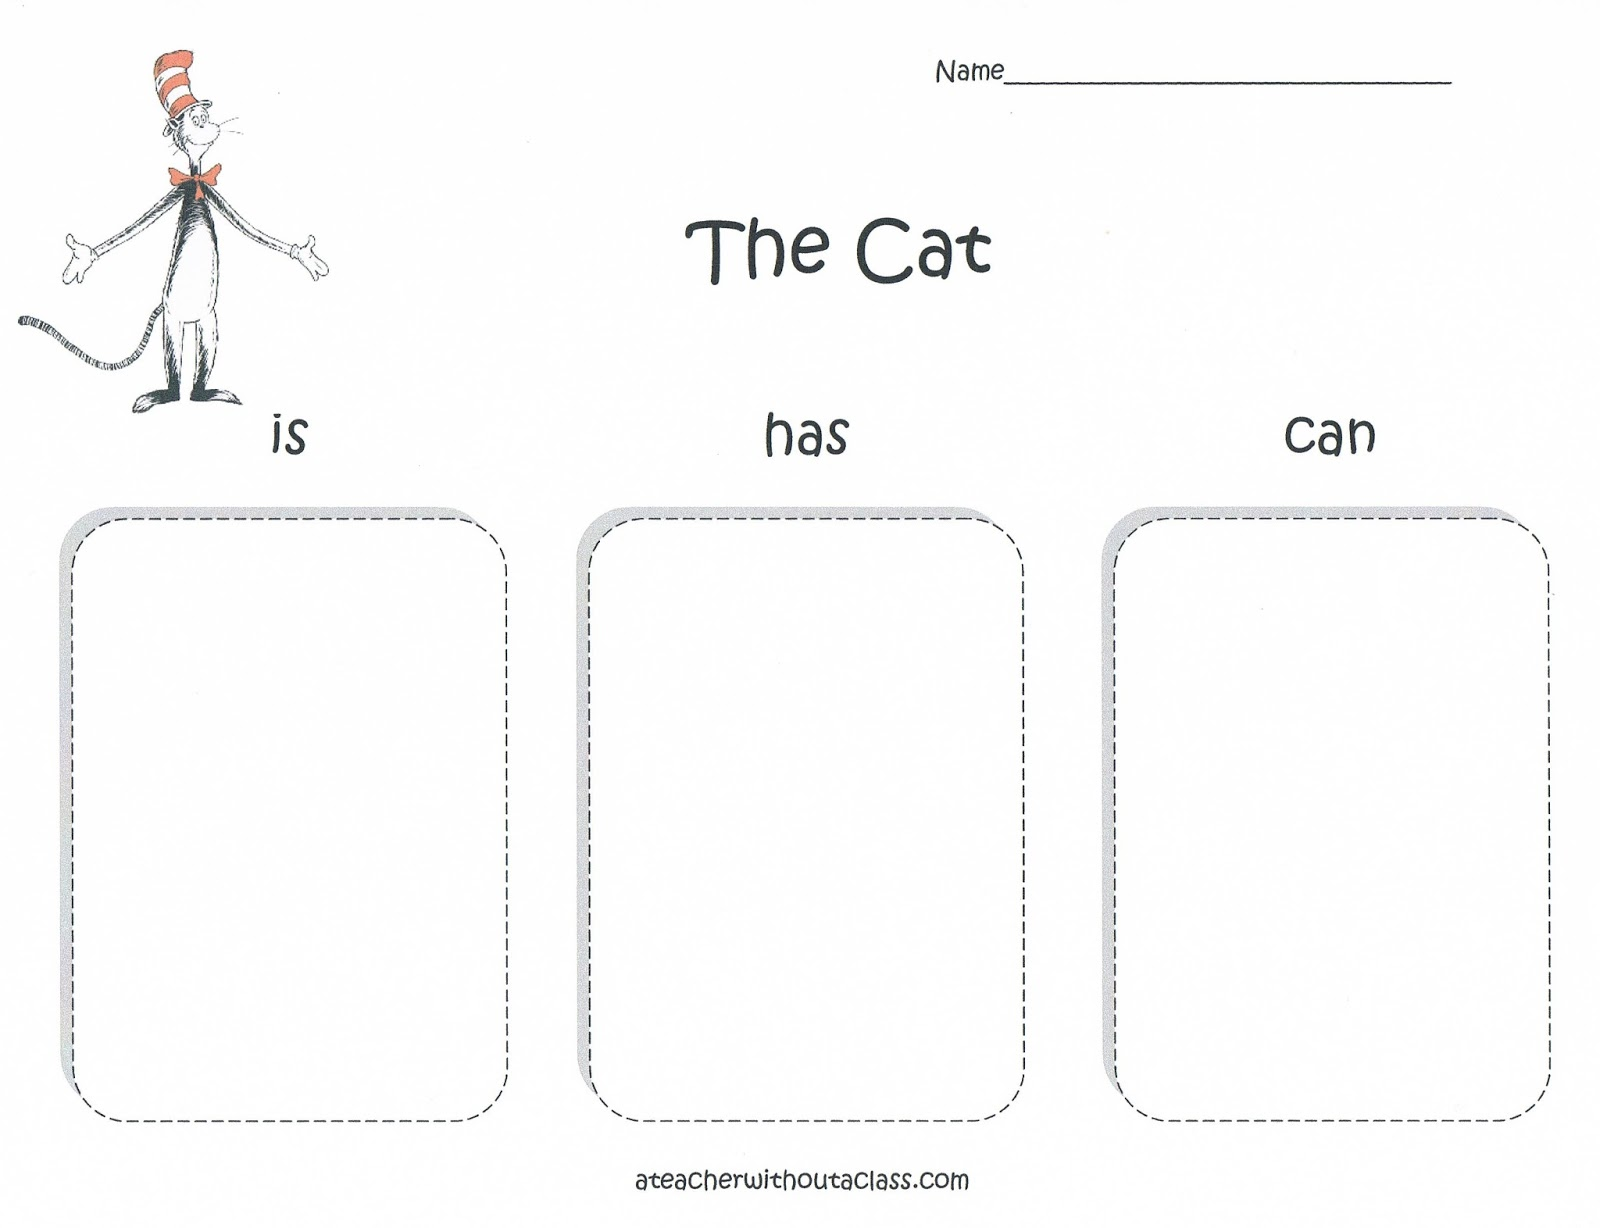 Worksheets The Cat In The Hat Worksheets a teacher without class cat in the hat graphic organizer